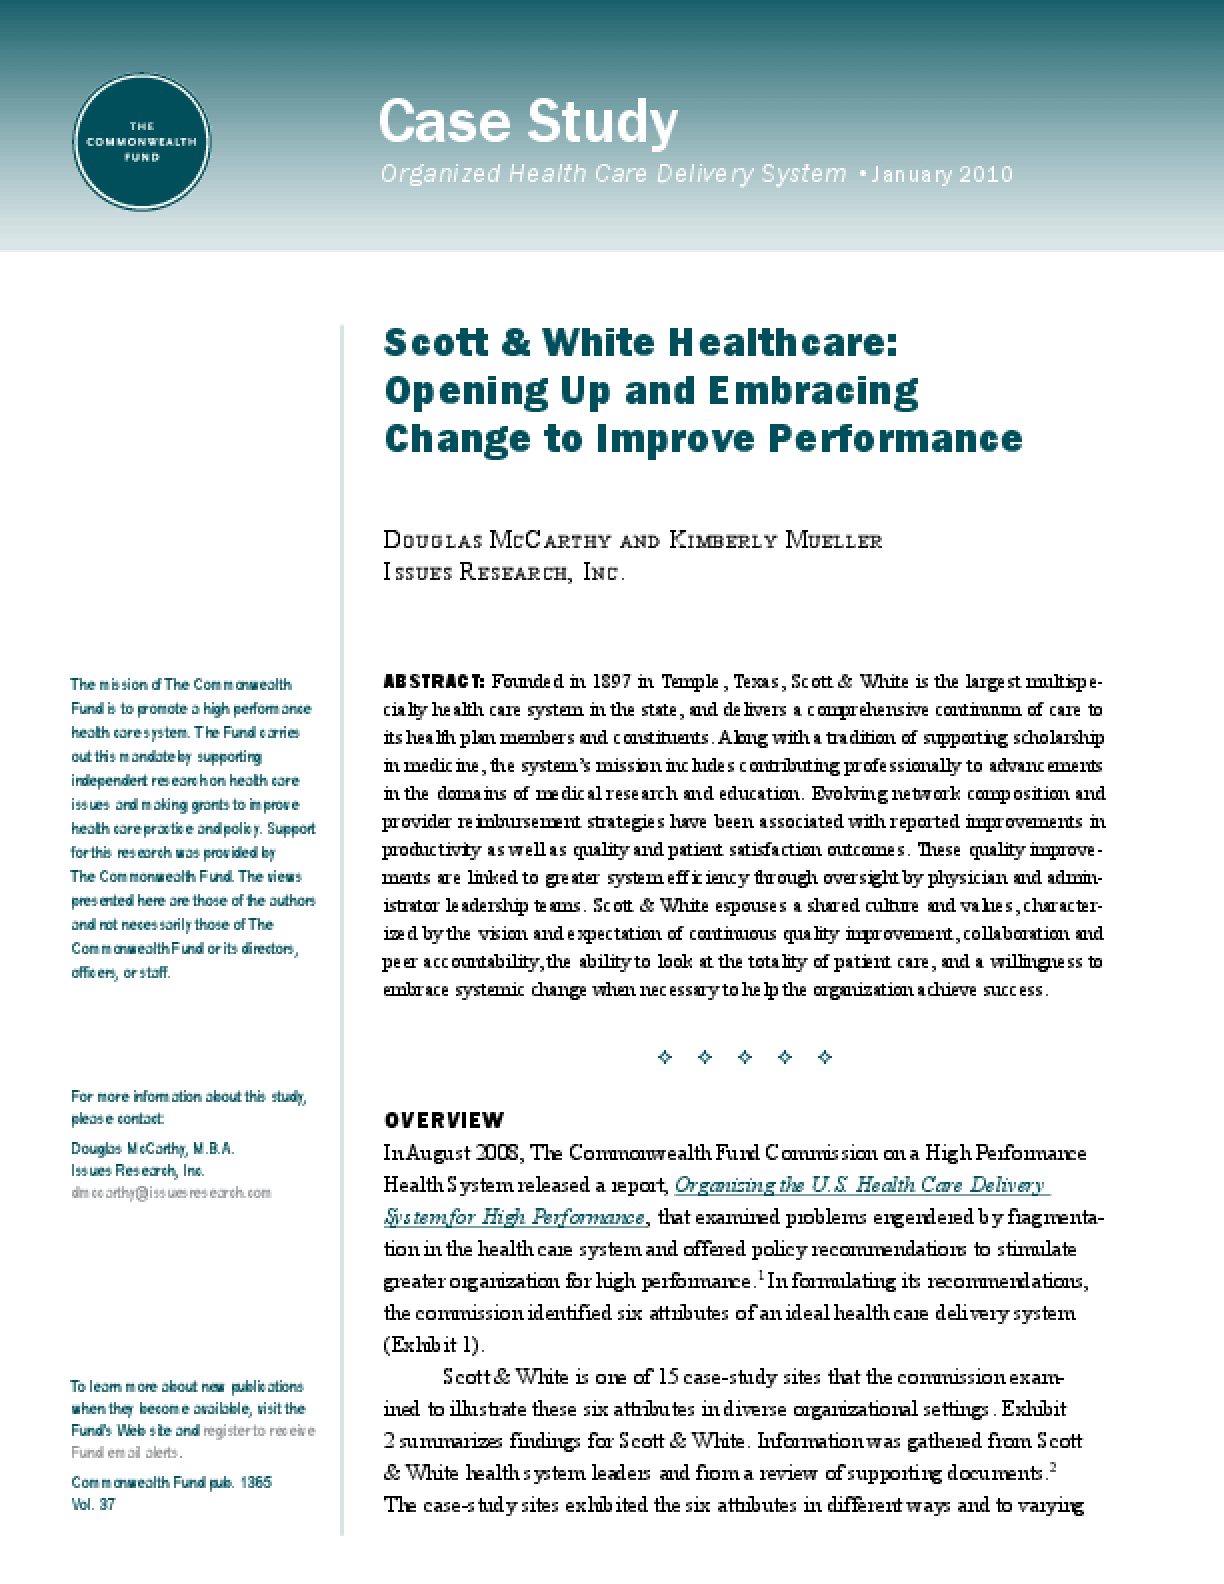 Scott & White Healthcare: Opening Up and Embracing Change to Improve Performance